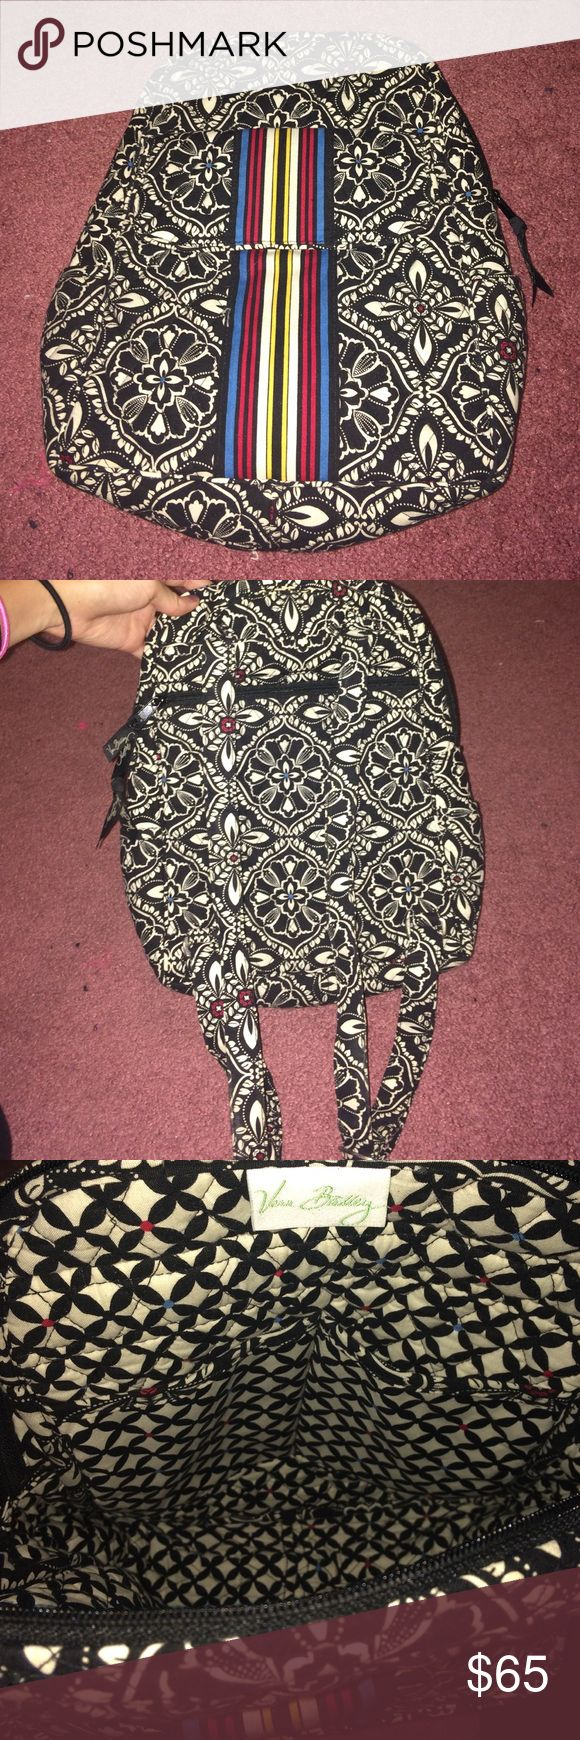 Vera Bradley bag Black and white backpack with red, blue, and yellow accents. Never been put to use other than once but really cute! Vera Bradley Bags